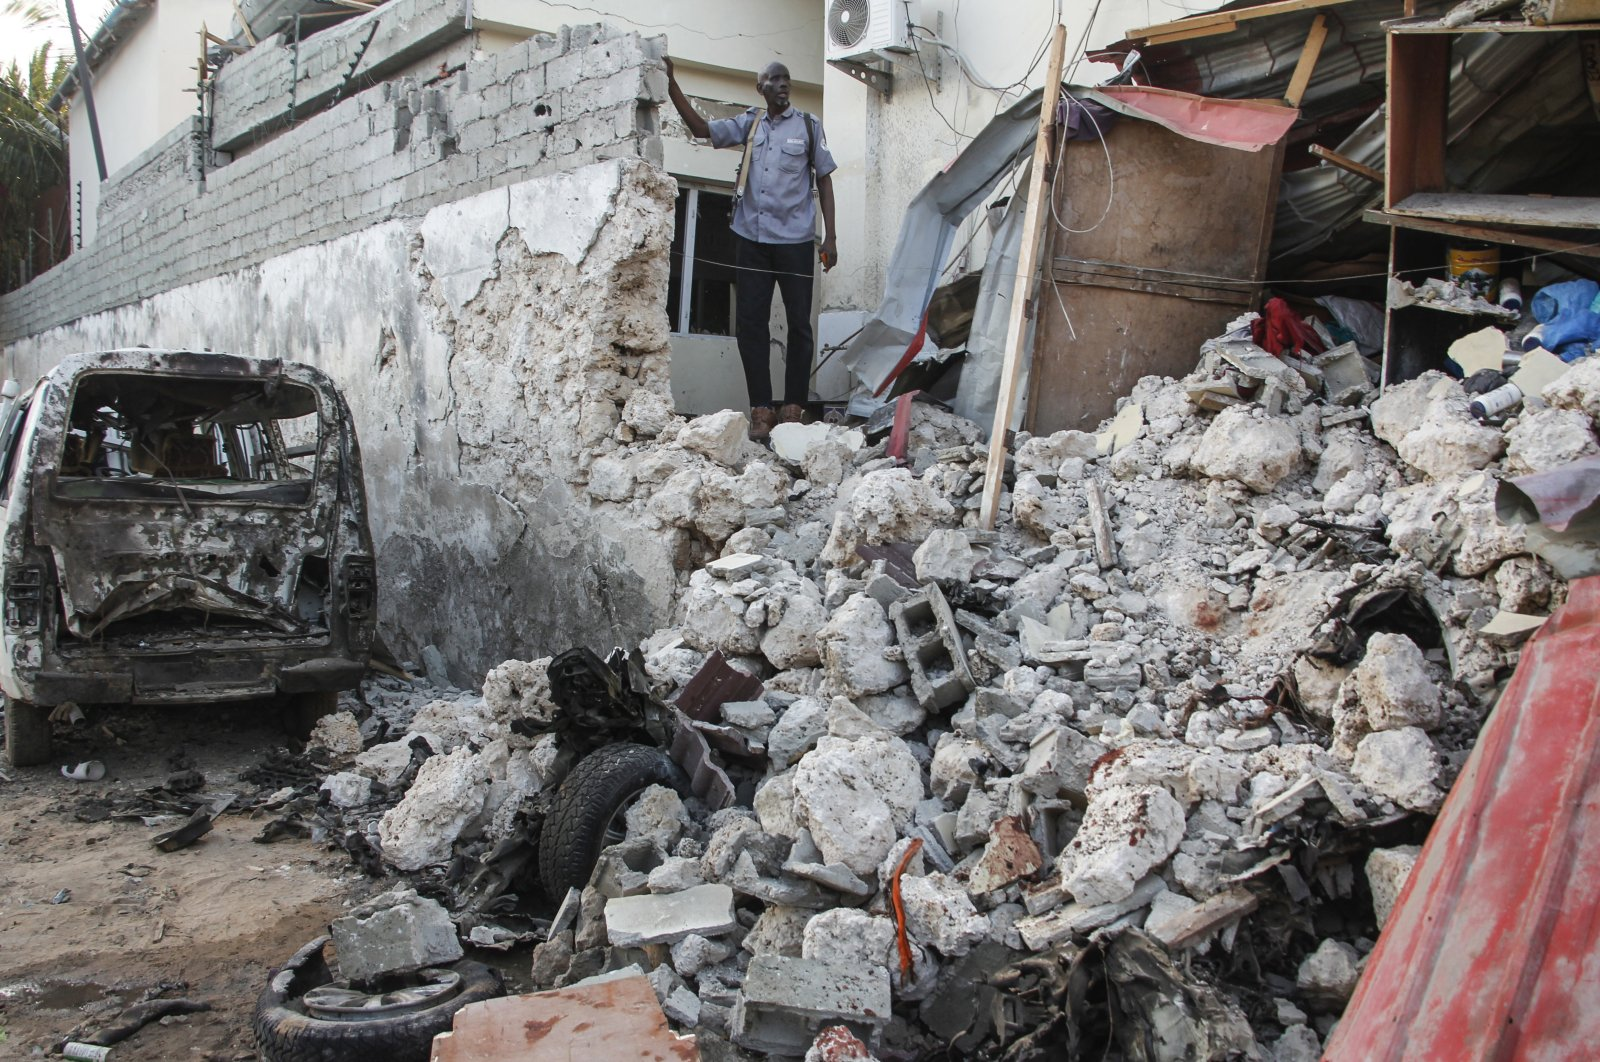 A hotel security guard stands by wreckage in the aftermath of an attack on the Afrik hotel in Mogadishu, Somalia, Feb. 1, 2021. (AP File Photo)